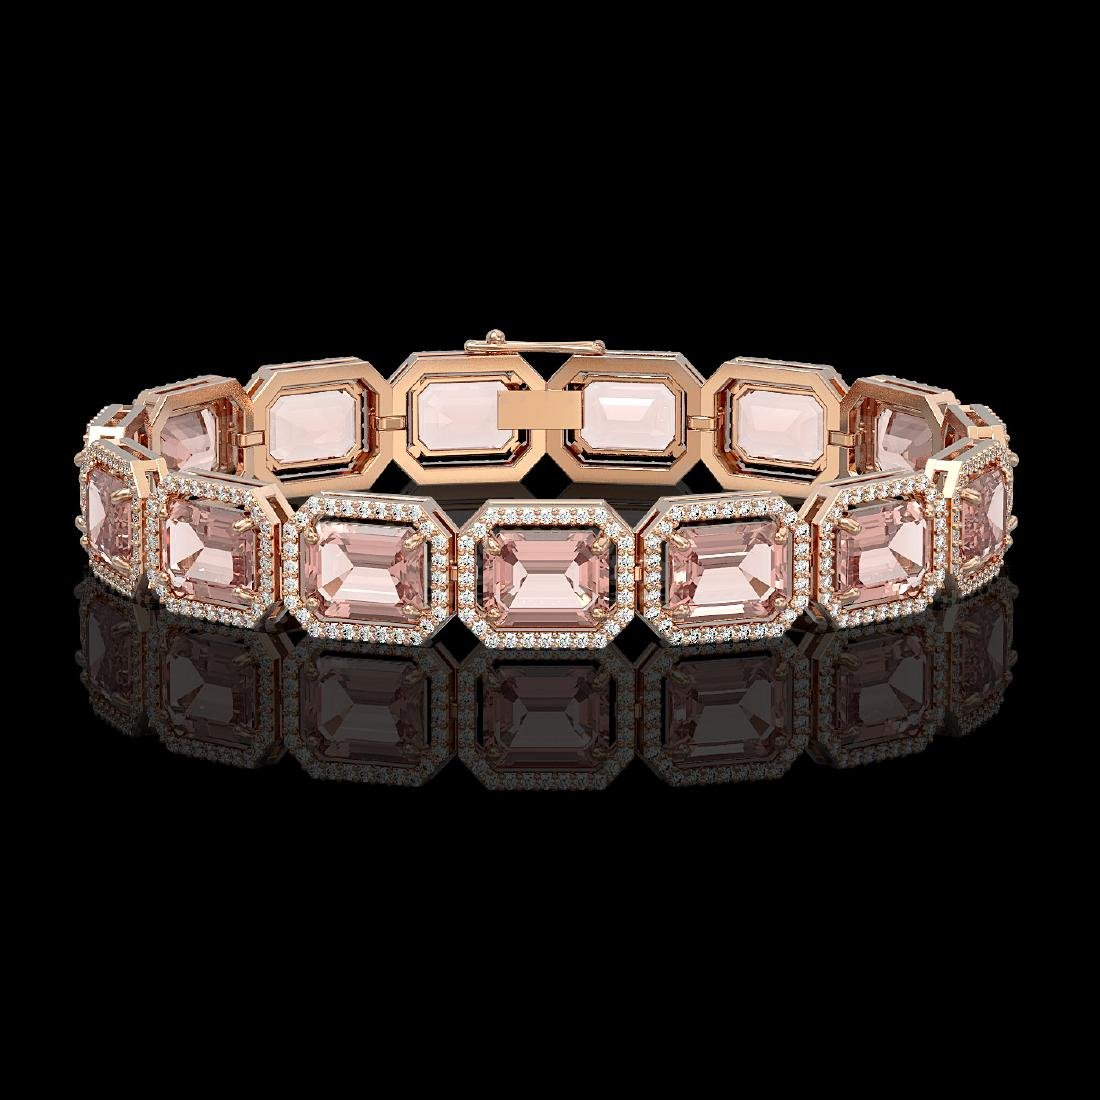 37.11 CTW Morganite & Diamond Halo Bracelet 10K Rose